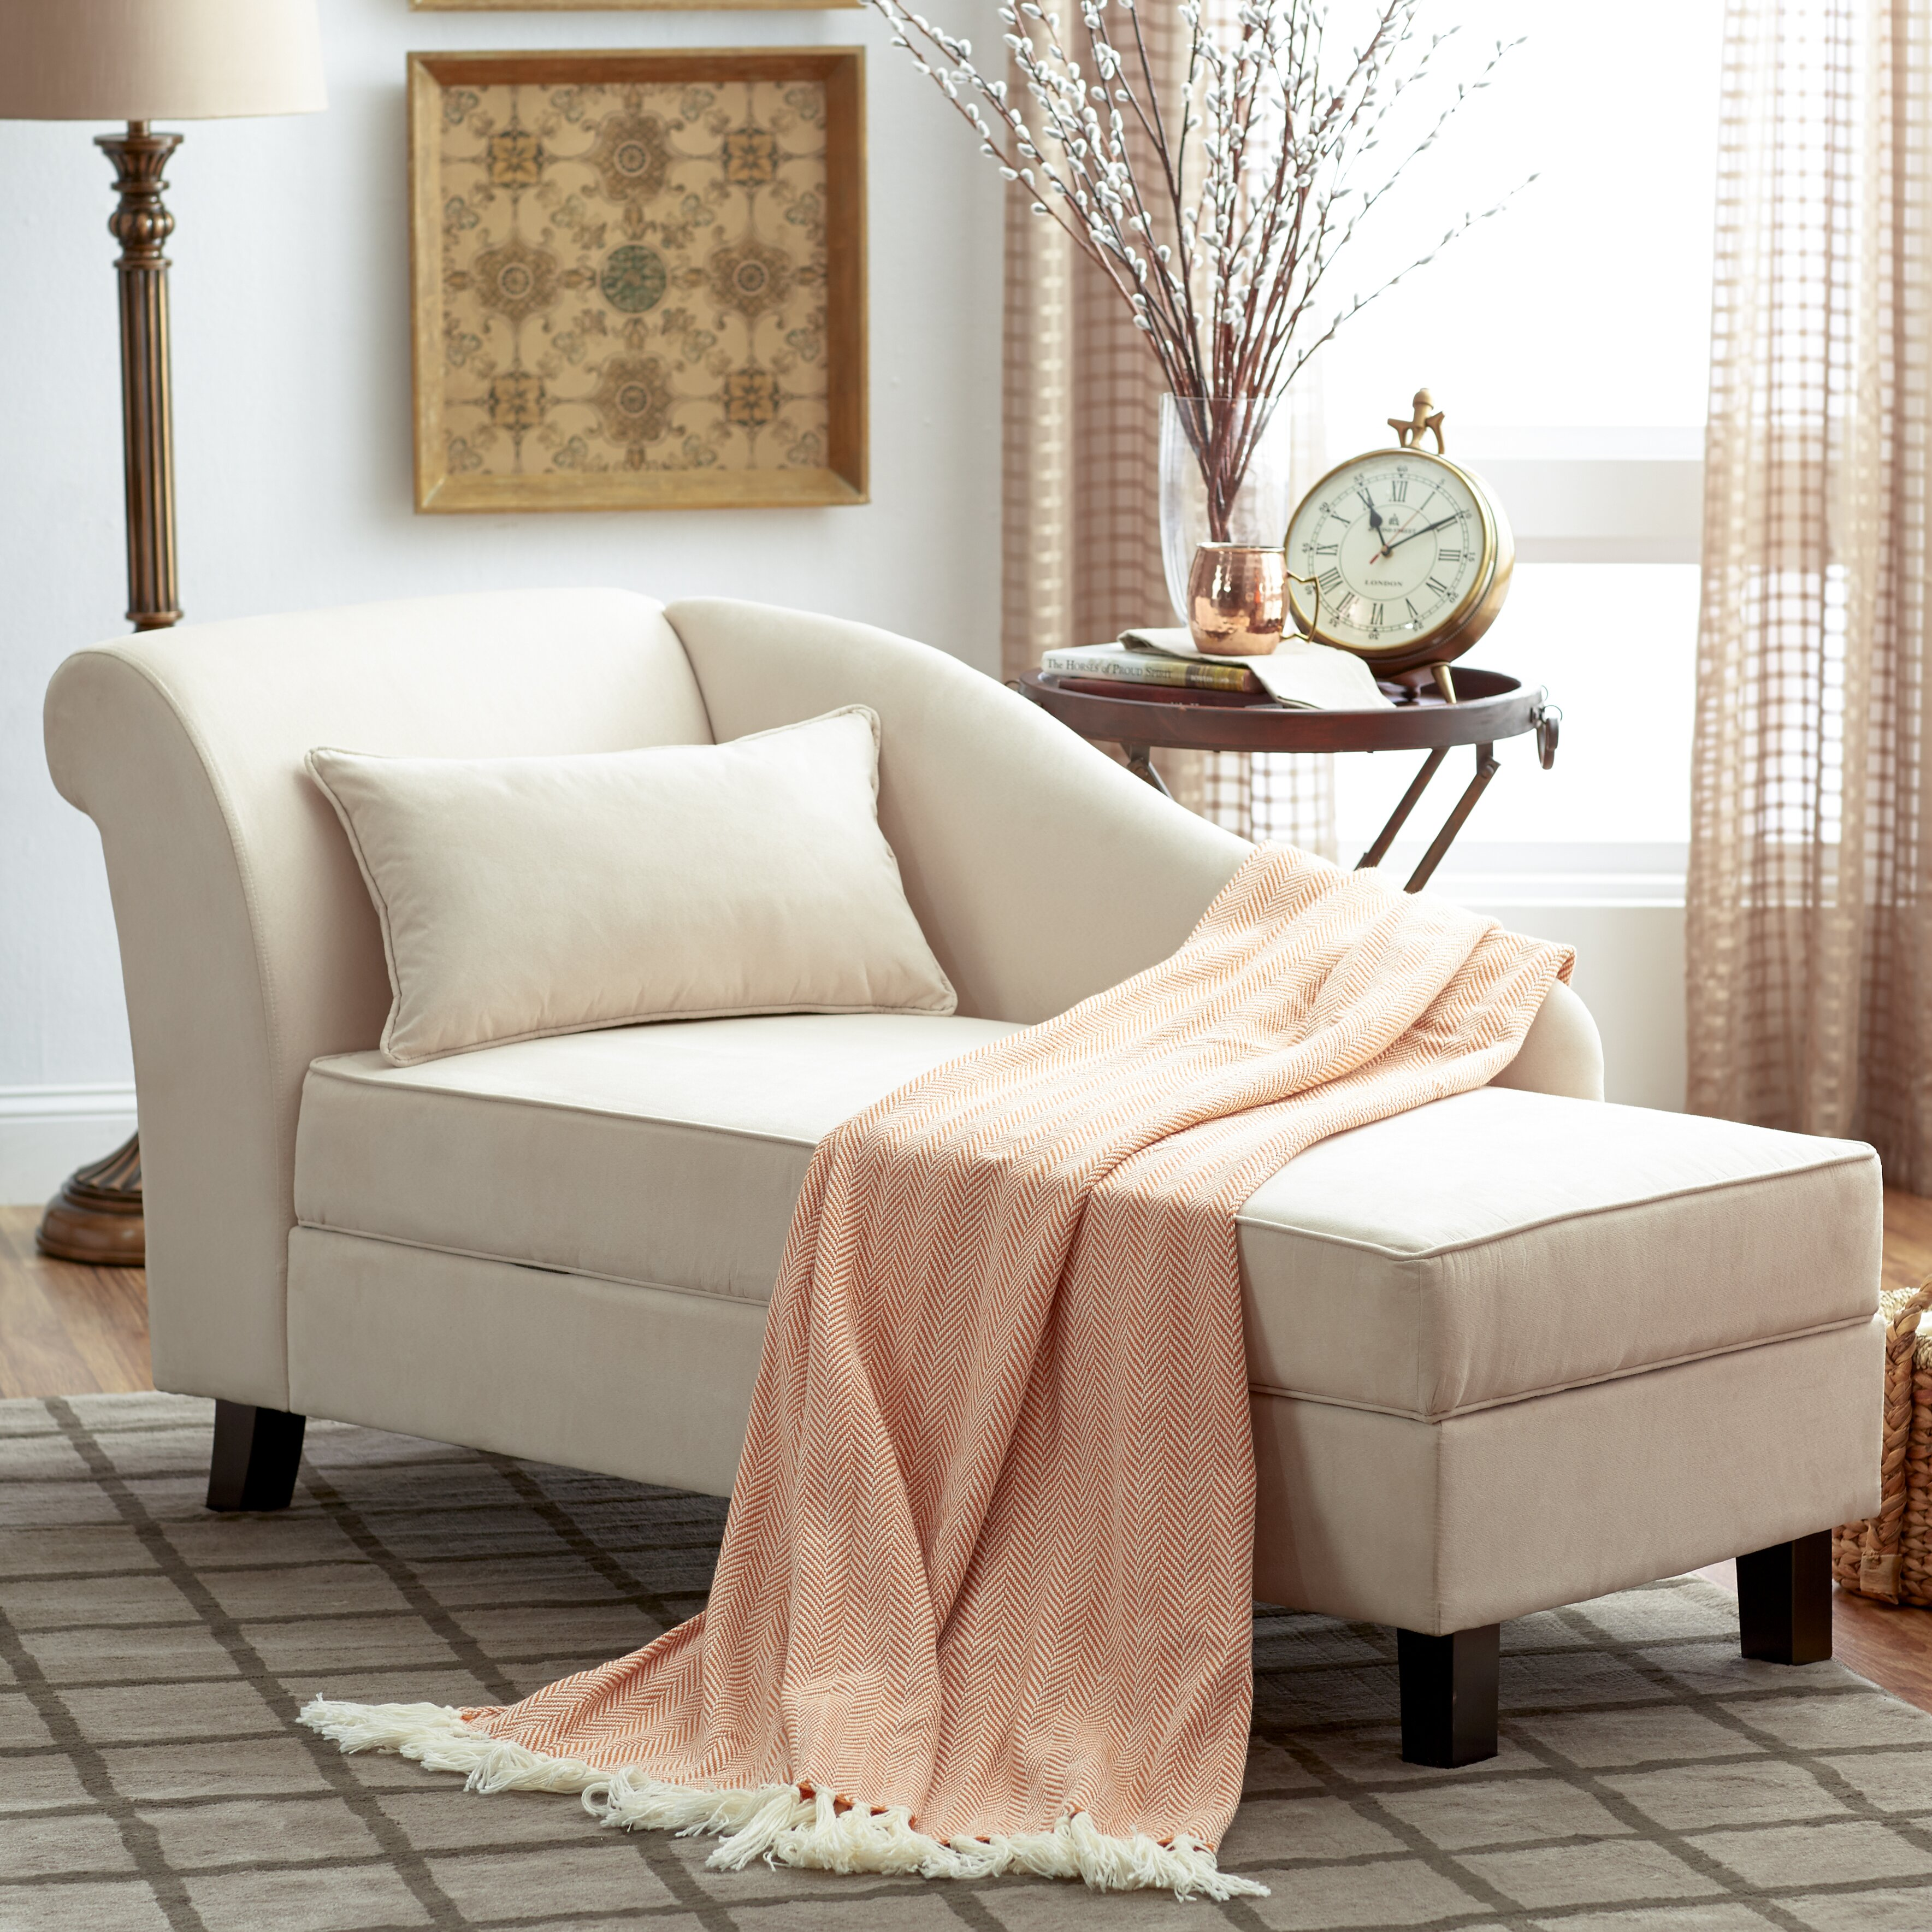 appealing living room chaise lounge | Three Posts Verona Storage Chaise Lounge & Reviews | Wayfair